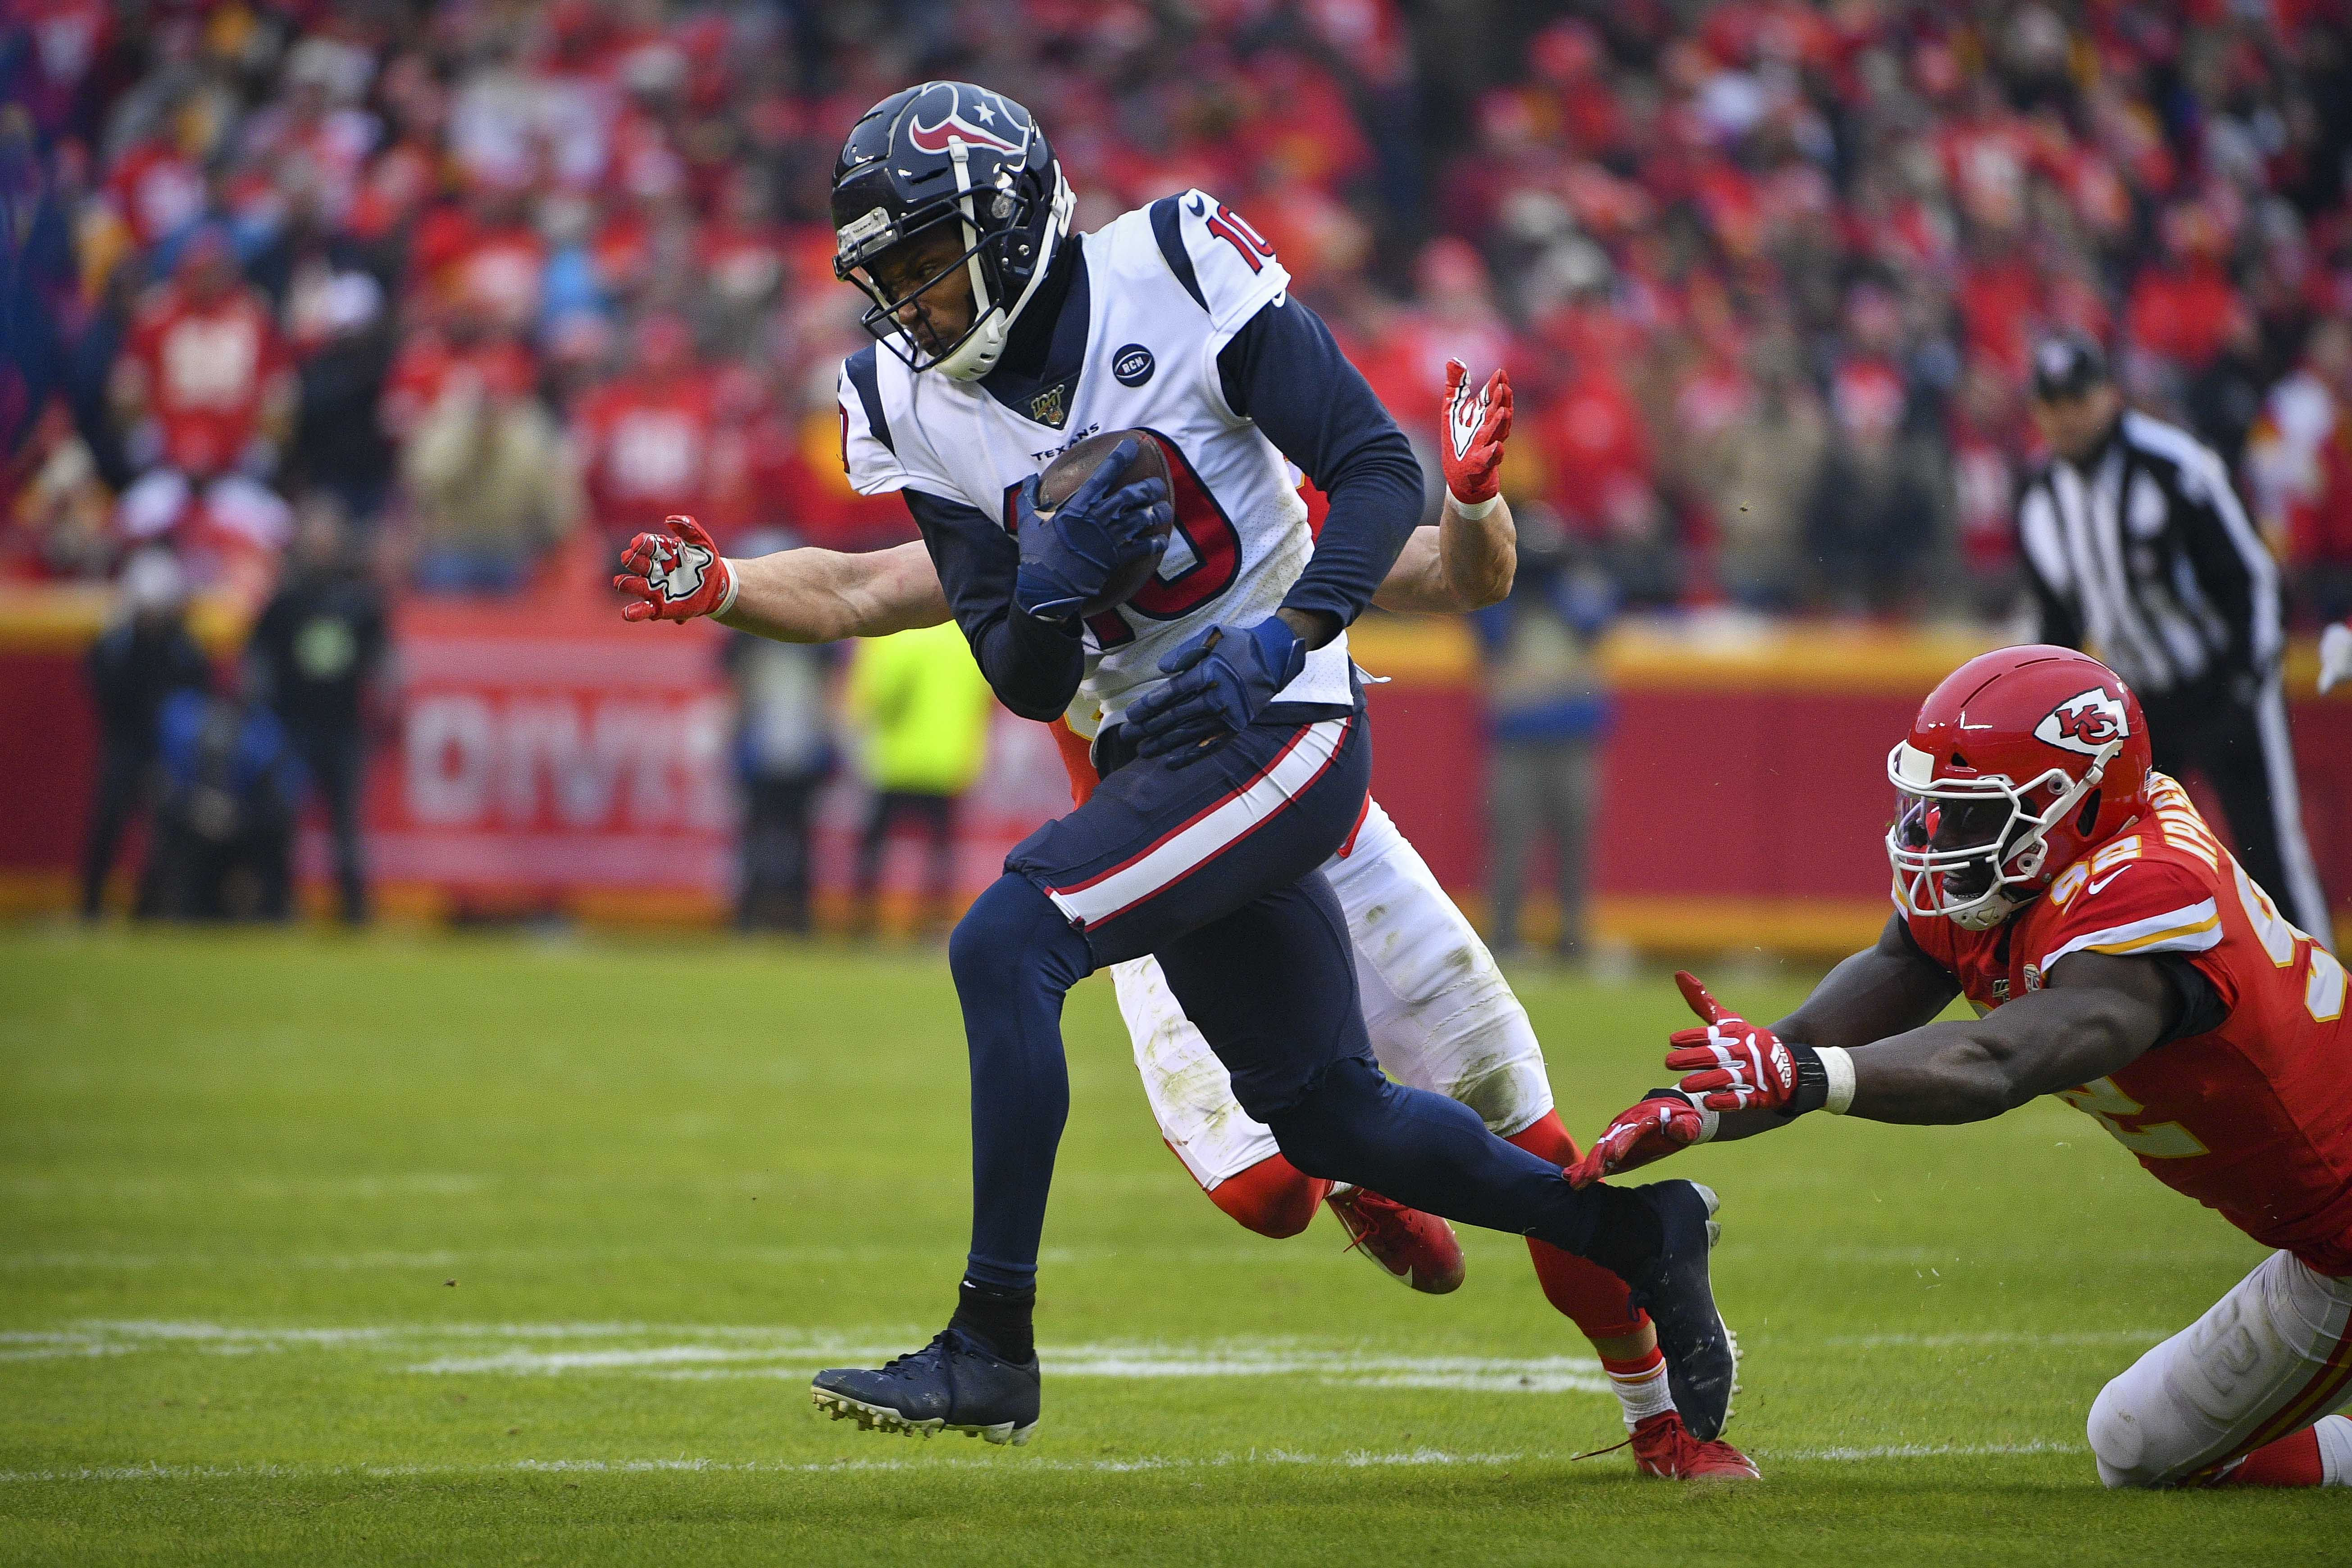 Houston Texans wide receiver DeAndre Hopkins runs against the Kansas City Chiefs during the second quarter in a AFC Divisional Round playoff football game at Arrowhead Stadium.